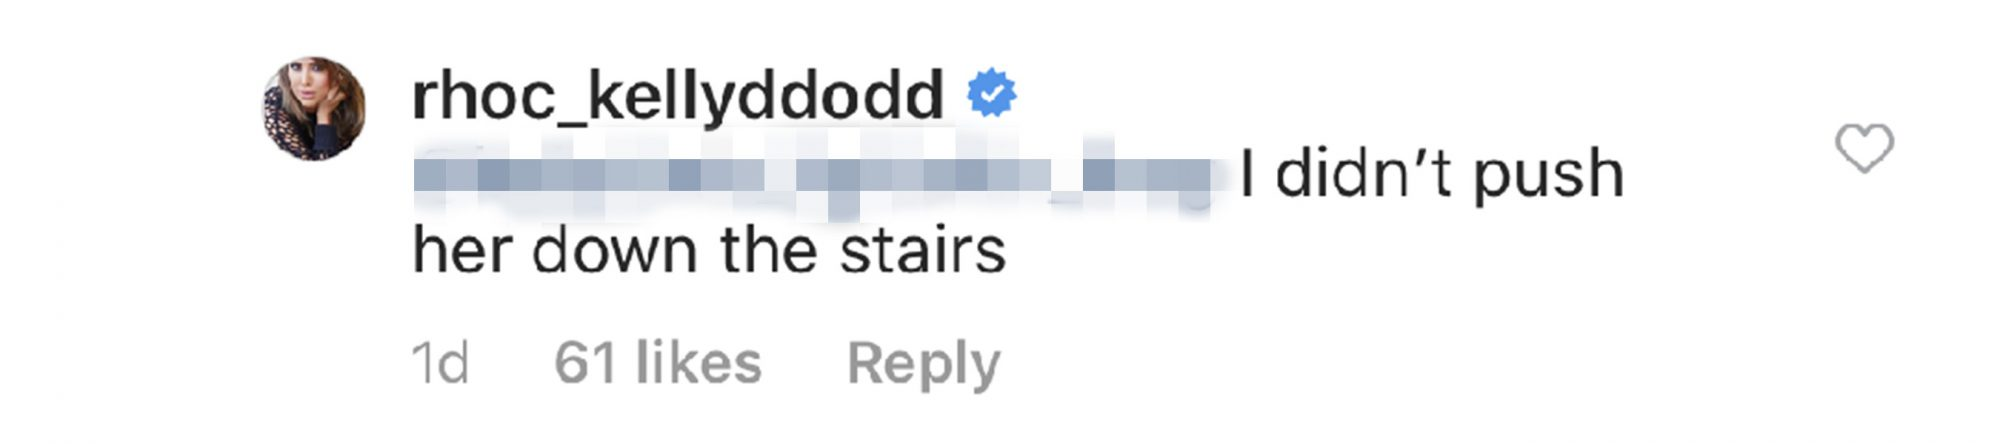 Kelly Dodd Instagram comment